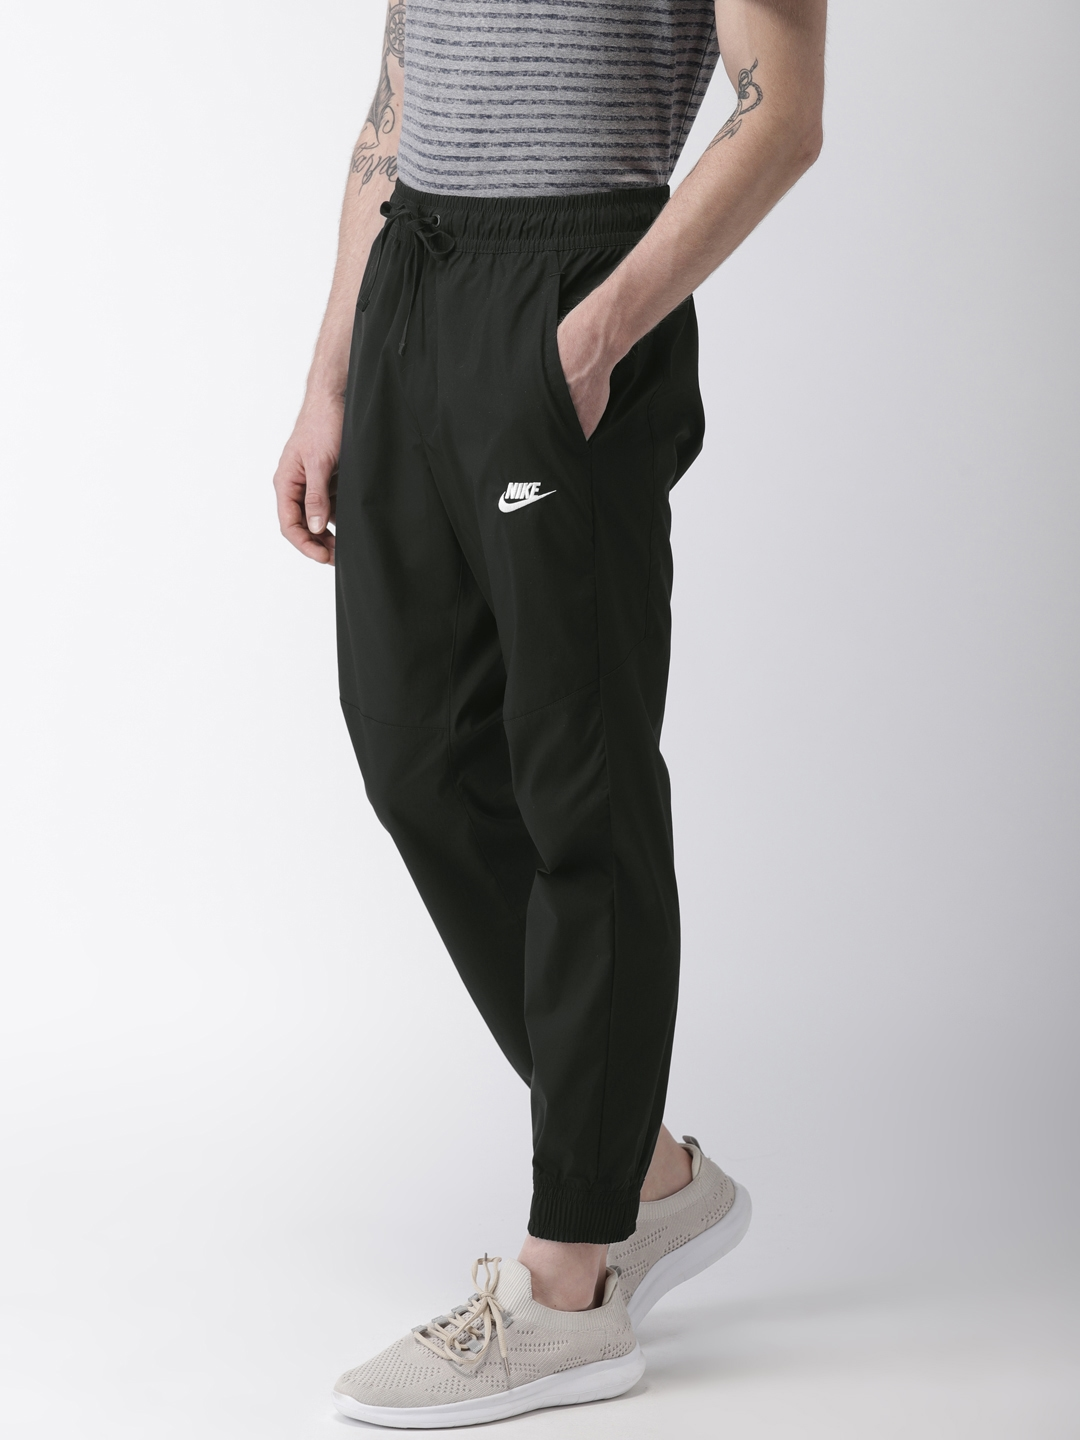 85c9630e6ca7 Buy Nike Black AS NSW CORE STREET Solid Joggers - Track Pants for ...